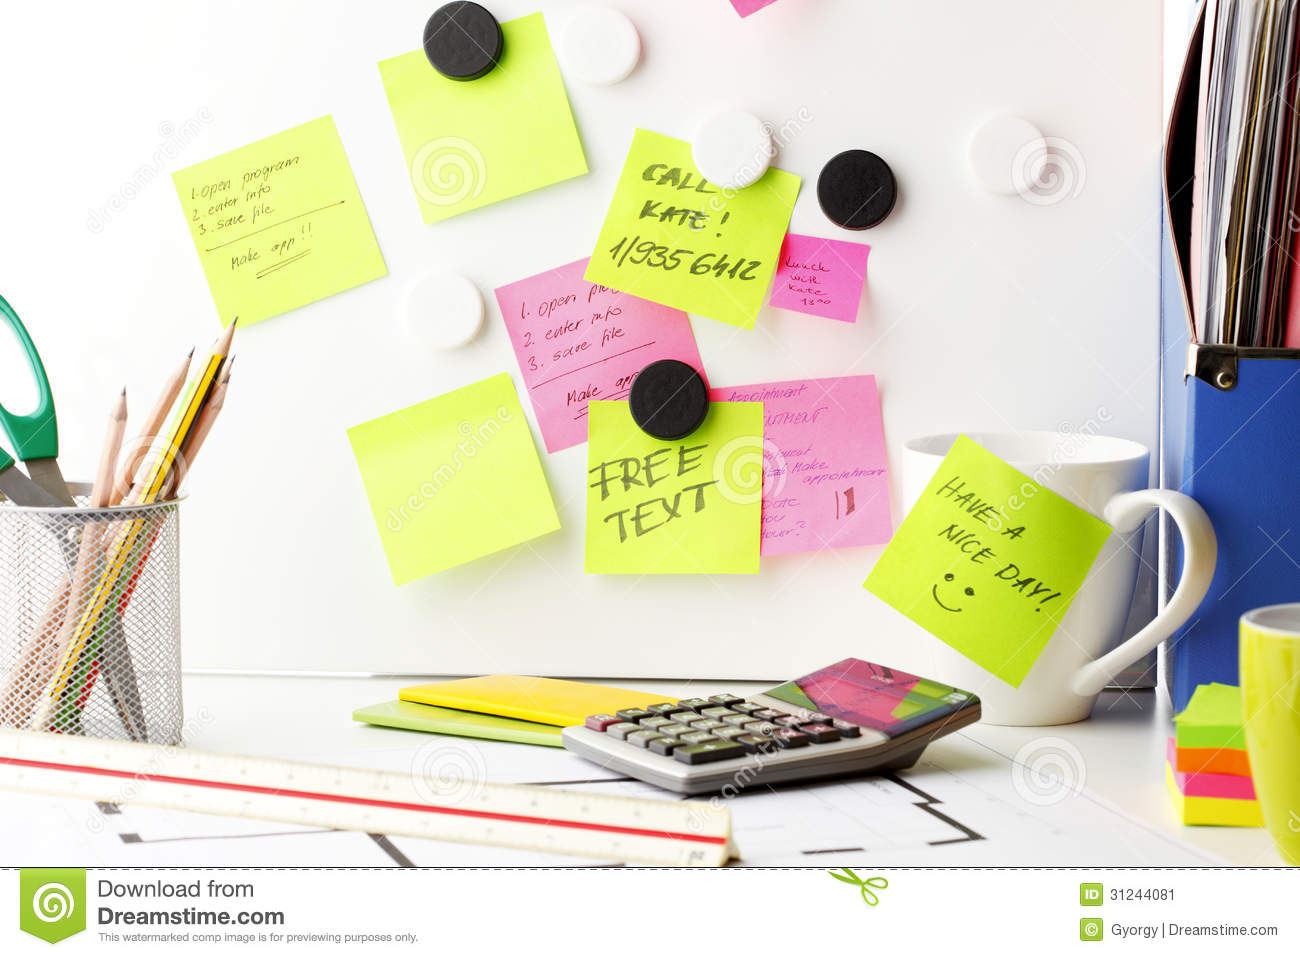 Stock Image Desk Post Notes Office Work Area Pink Yellow Image31244081 on Busy Binder